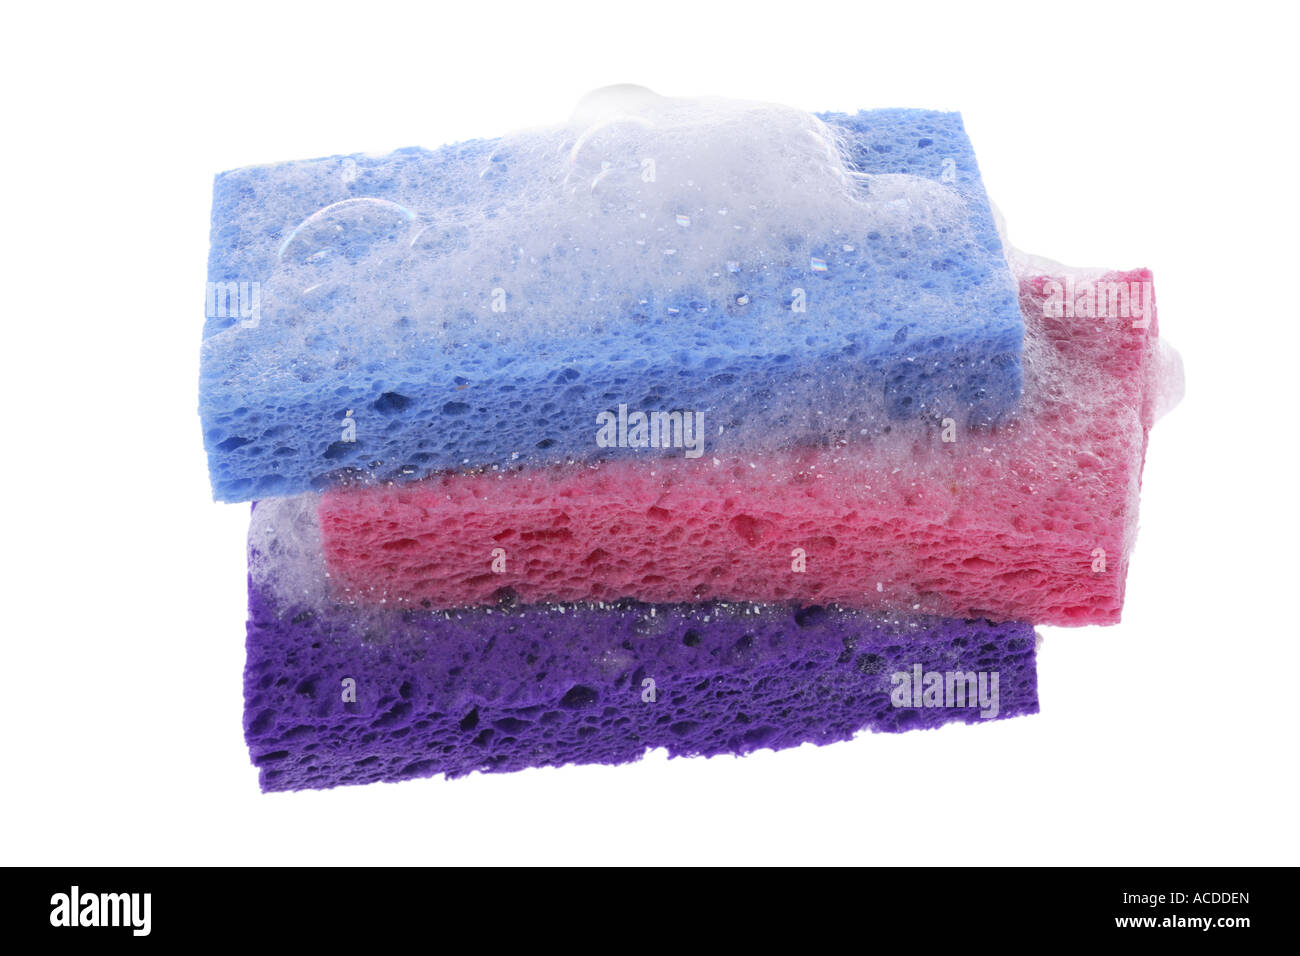 Sponges with soap suds cut out on white background - Stock Image